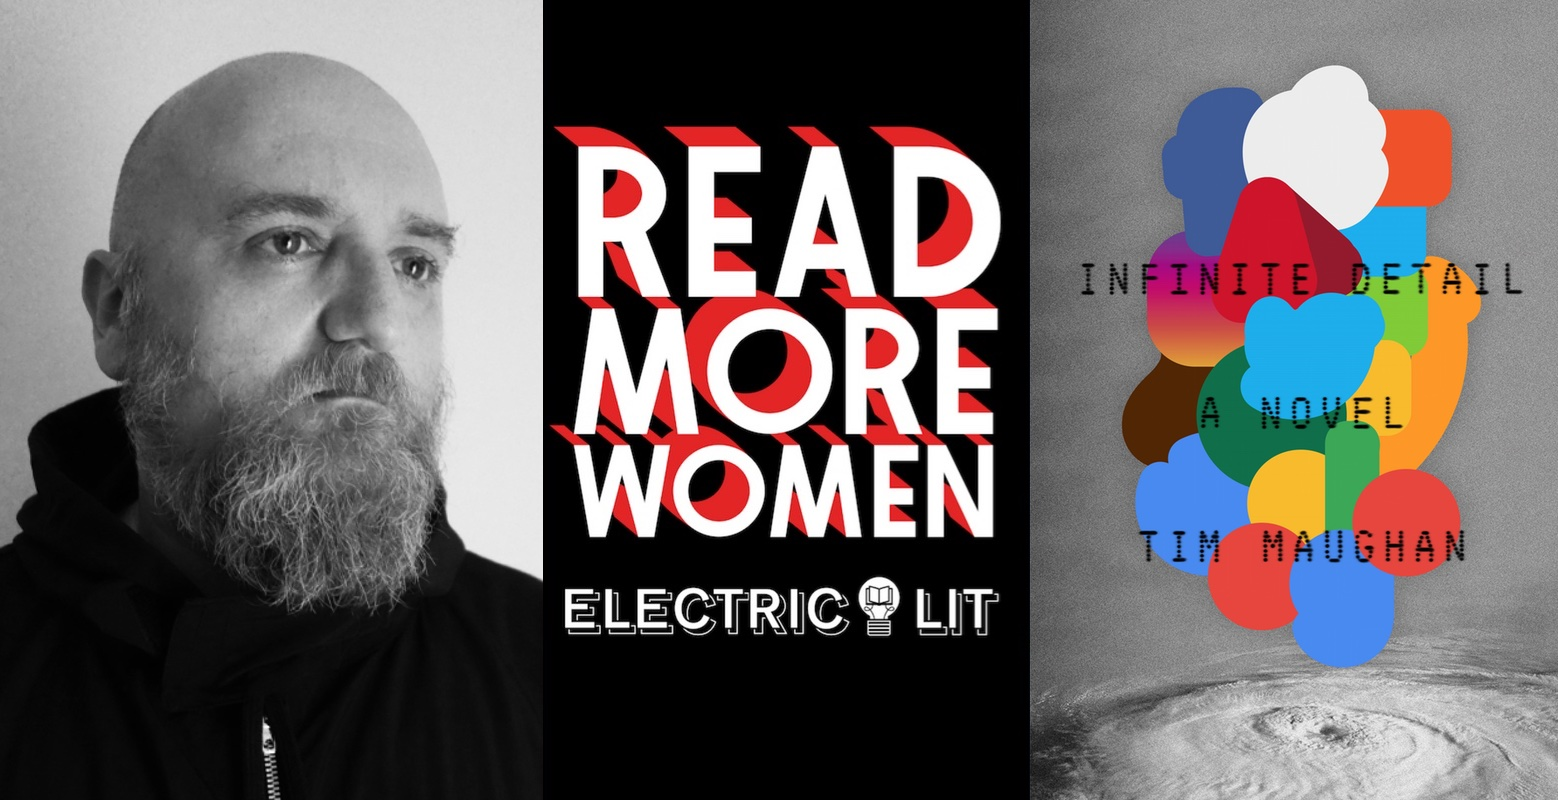 Tim Maughan, his book Infinite Detail, and the Read More Women logo